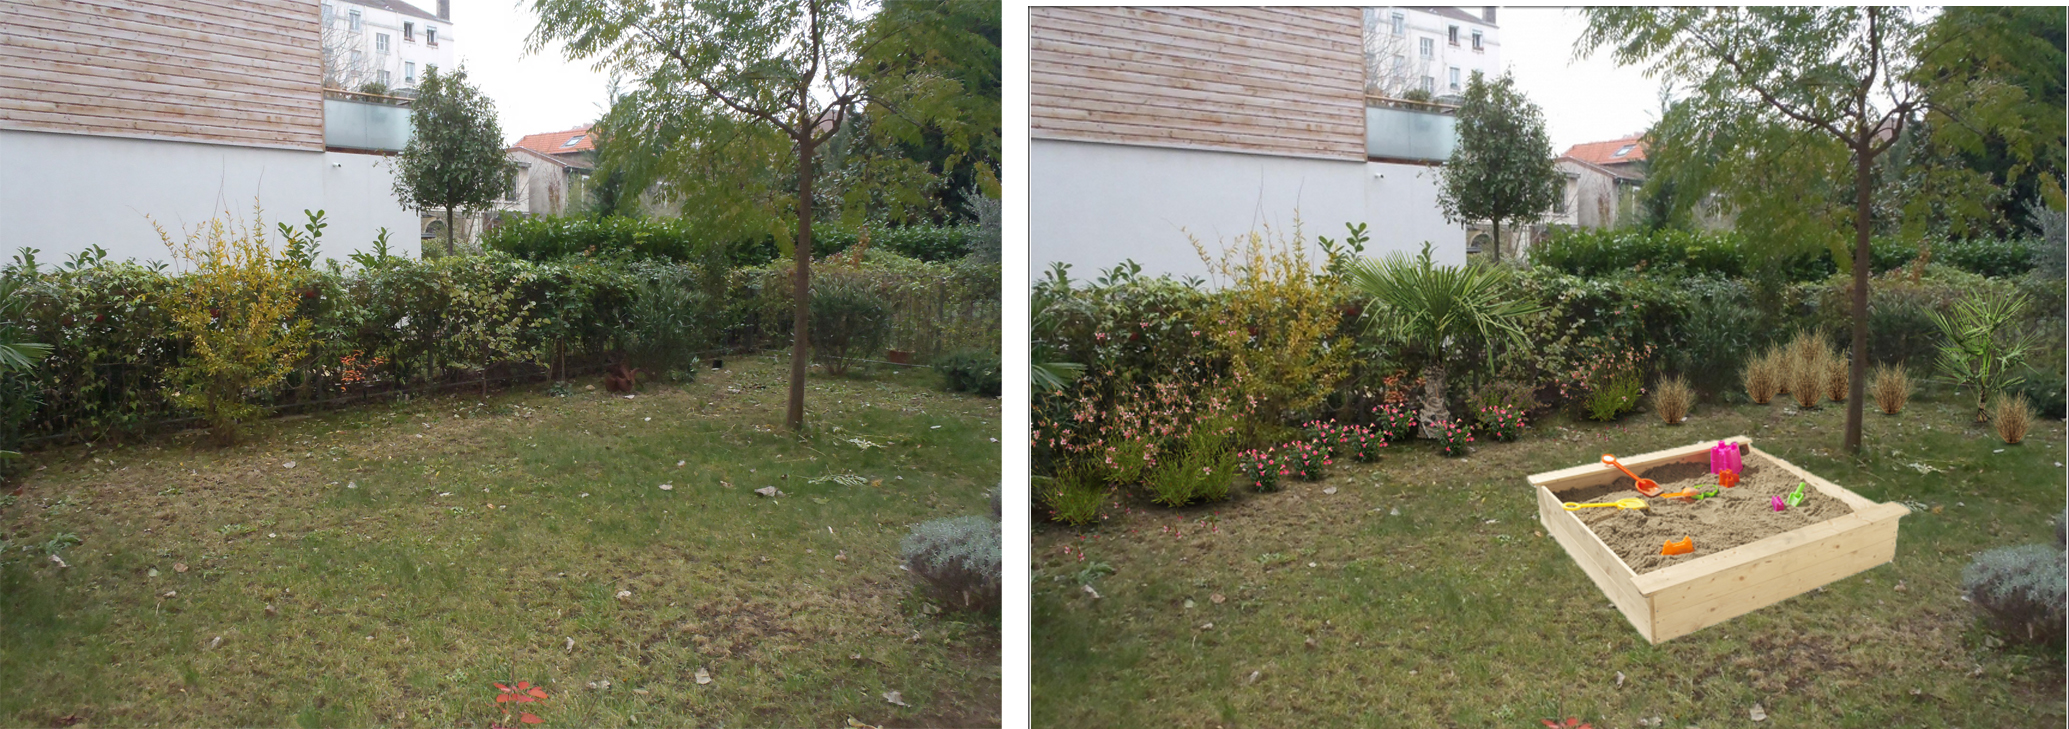 Idees jardins paysagers d coration de maison contemporaine for Idees jardins paysagers